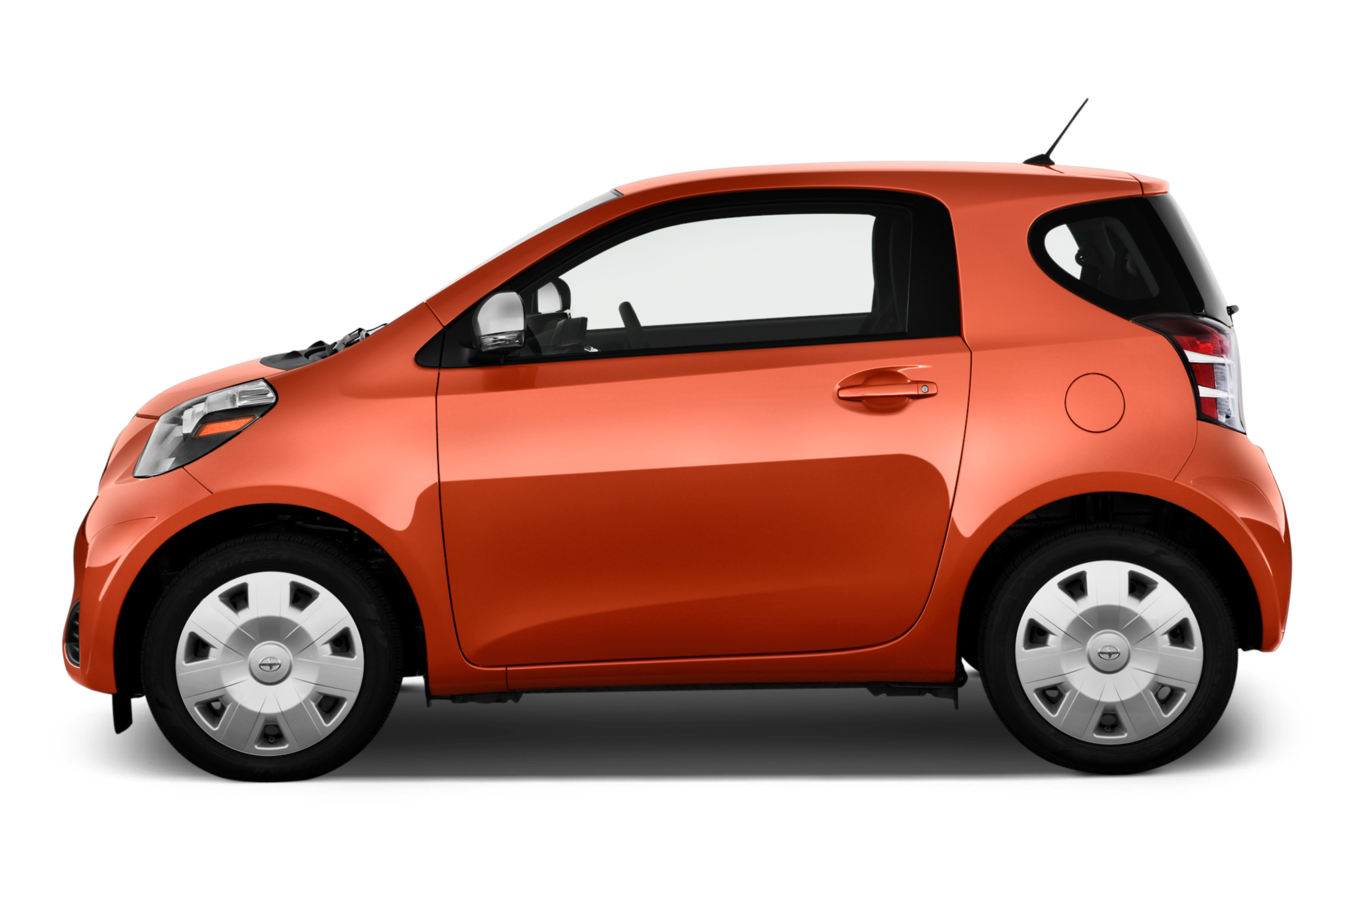 Scion iq photo - 6